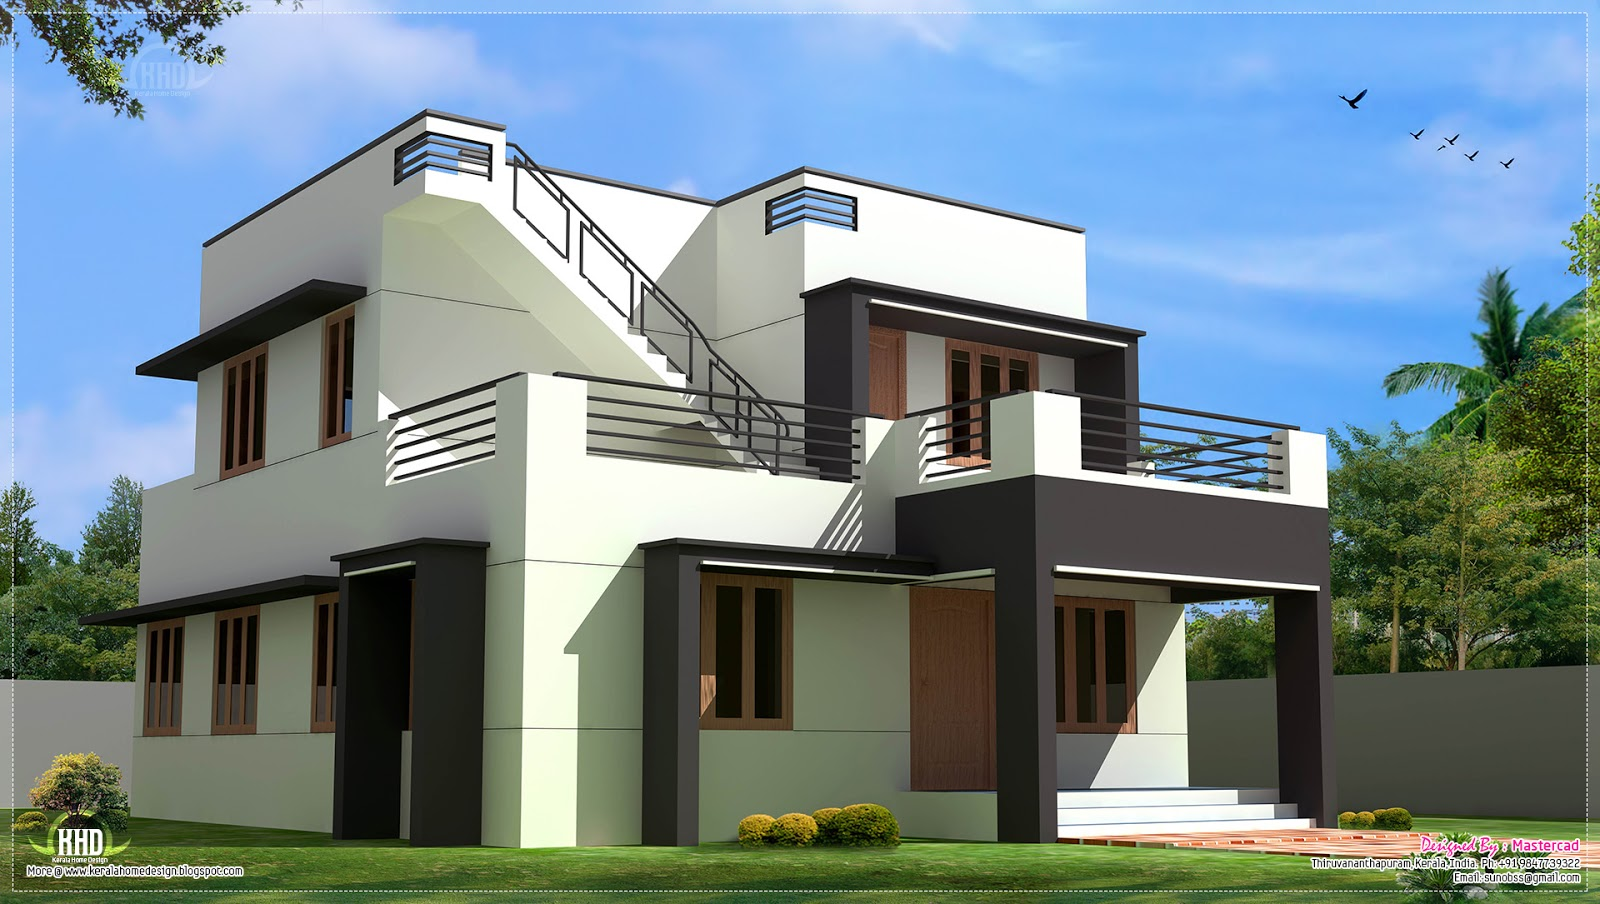 Modern house design in 1700 kerala home design Modern house company